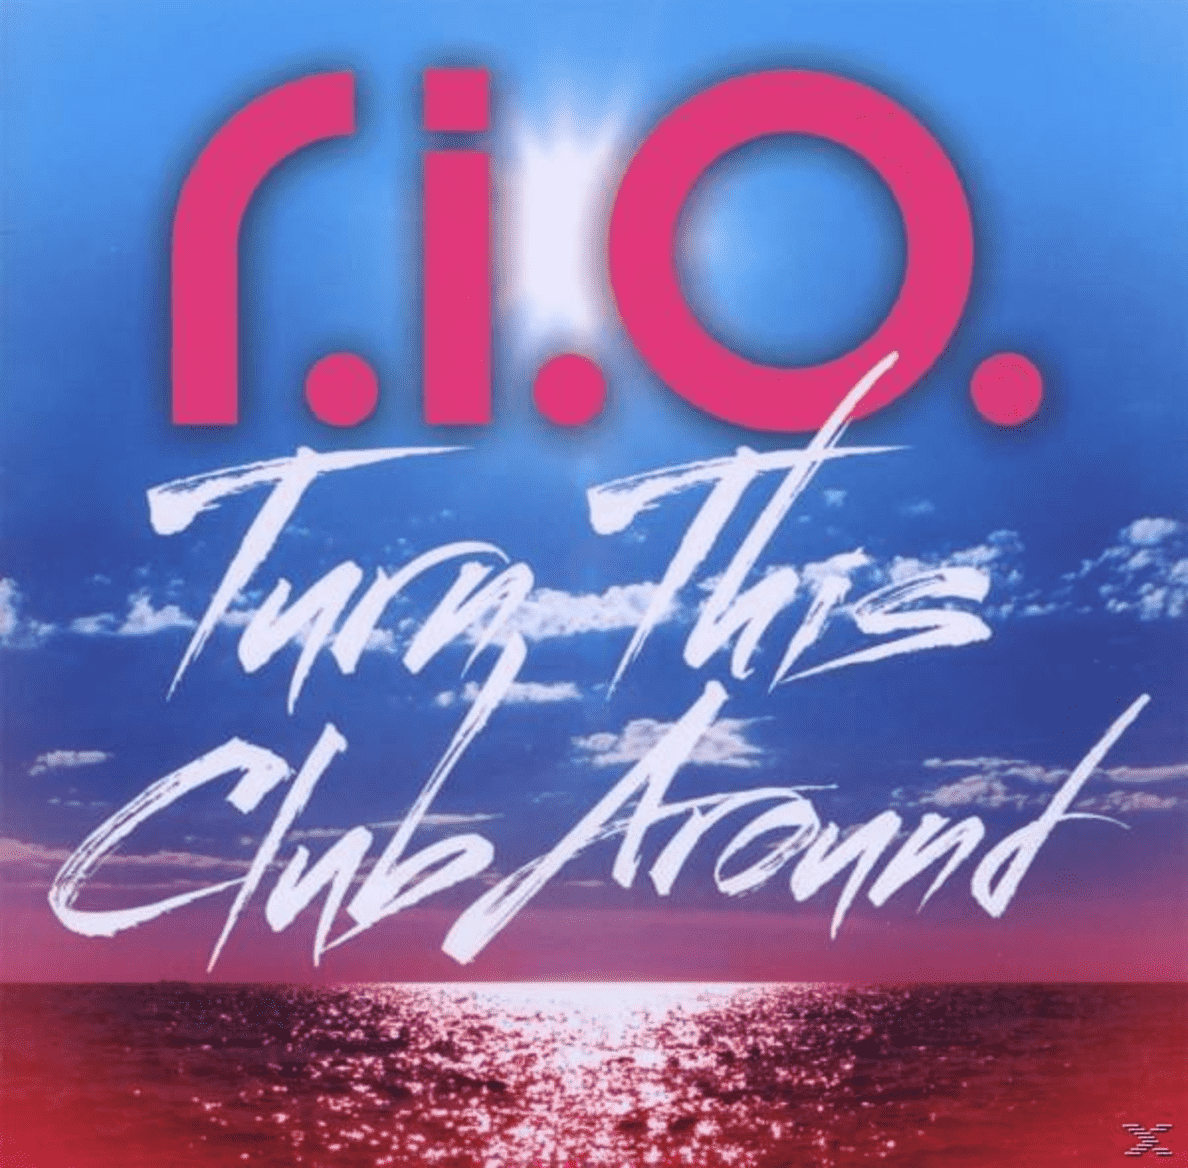 Turn This Club Around (Limited Edition) R.I.O. auf CD